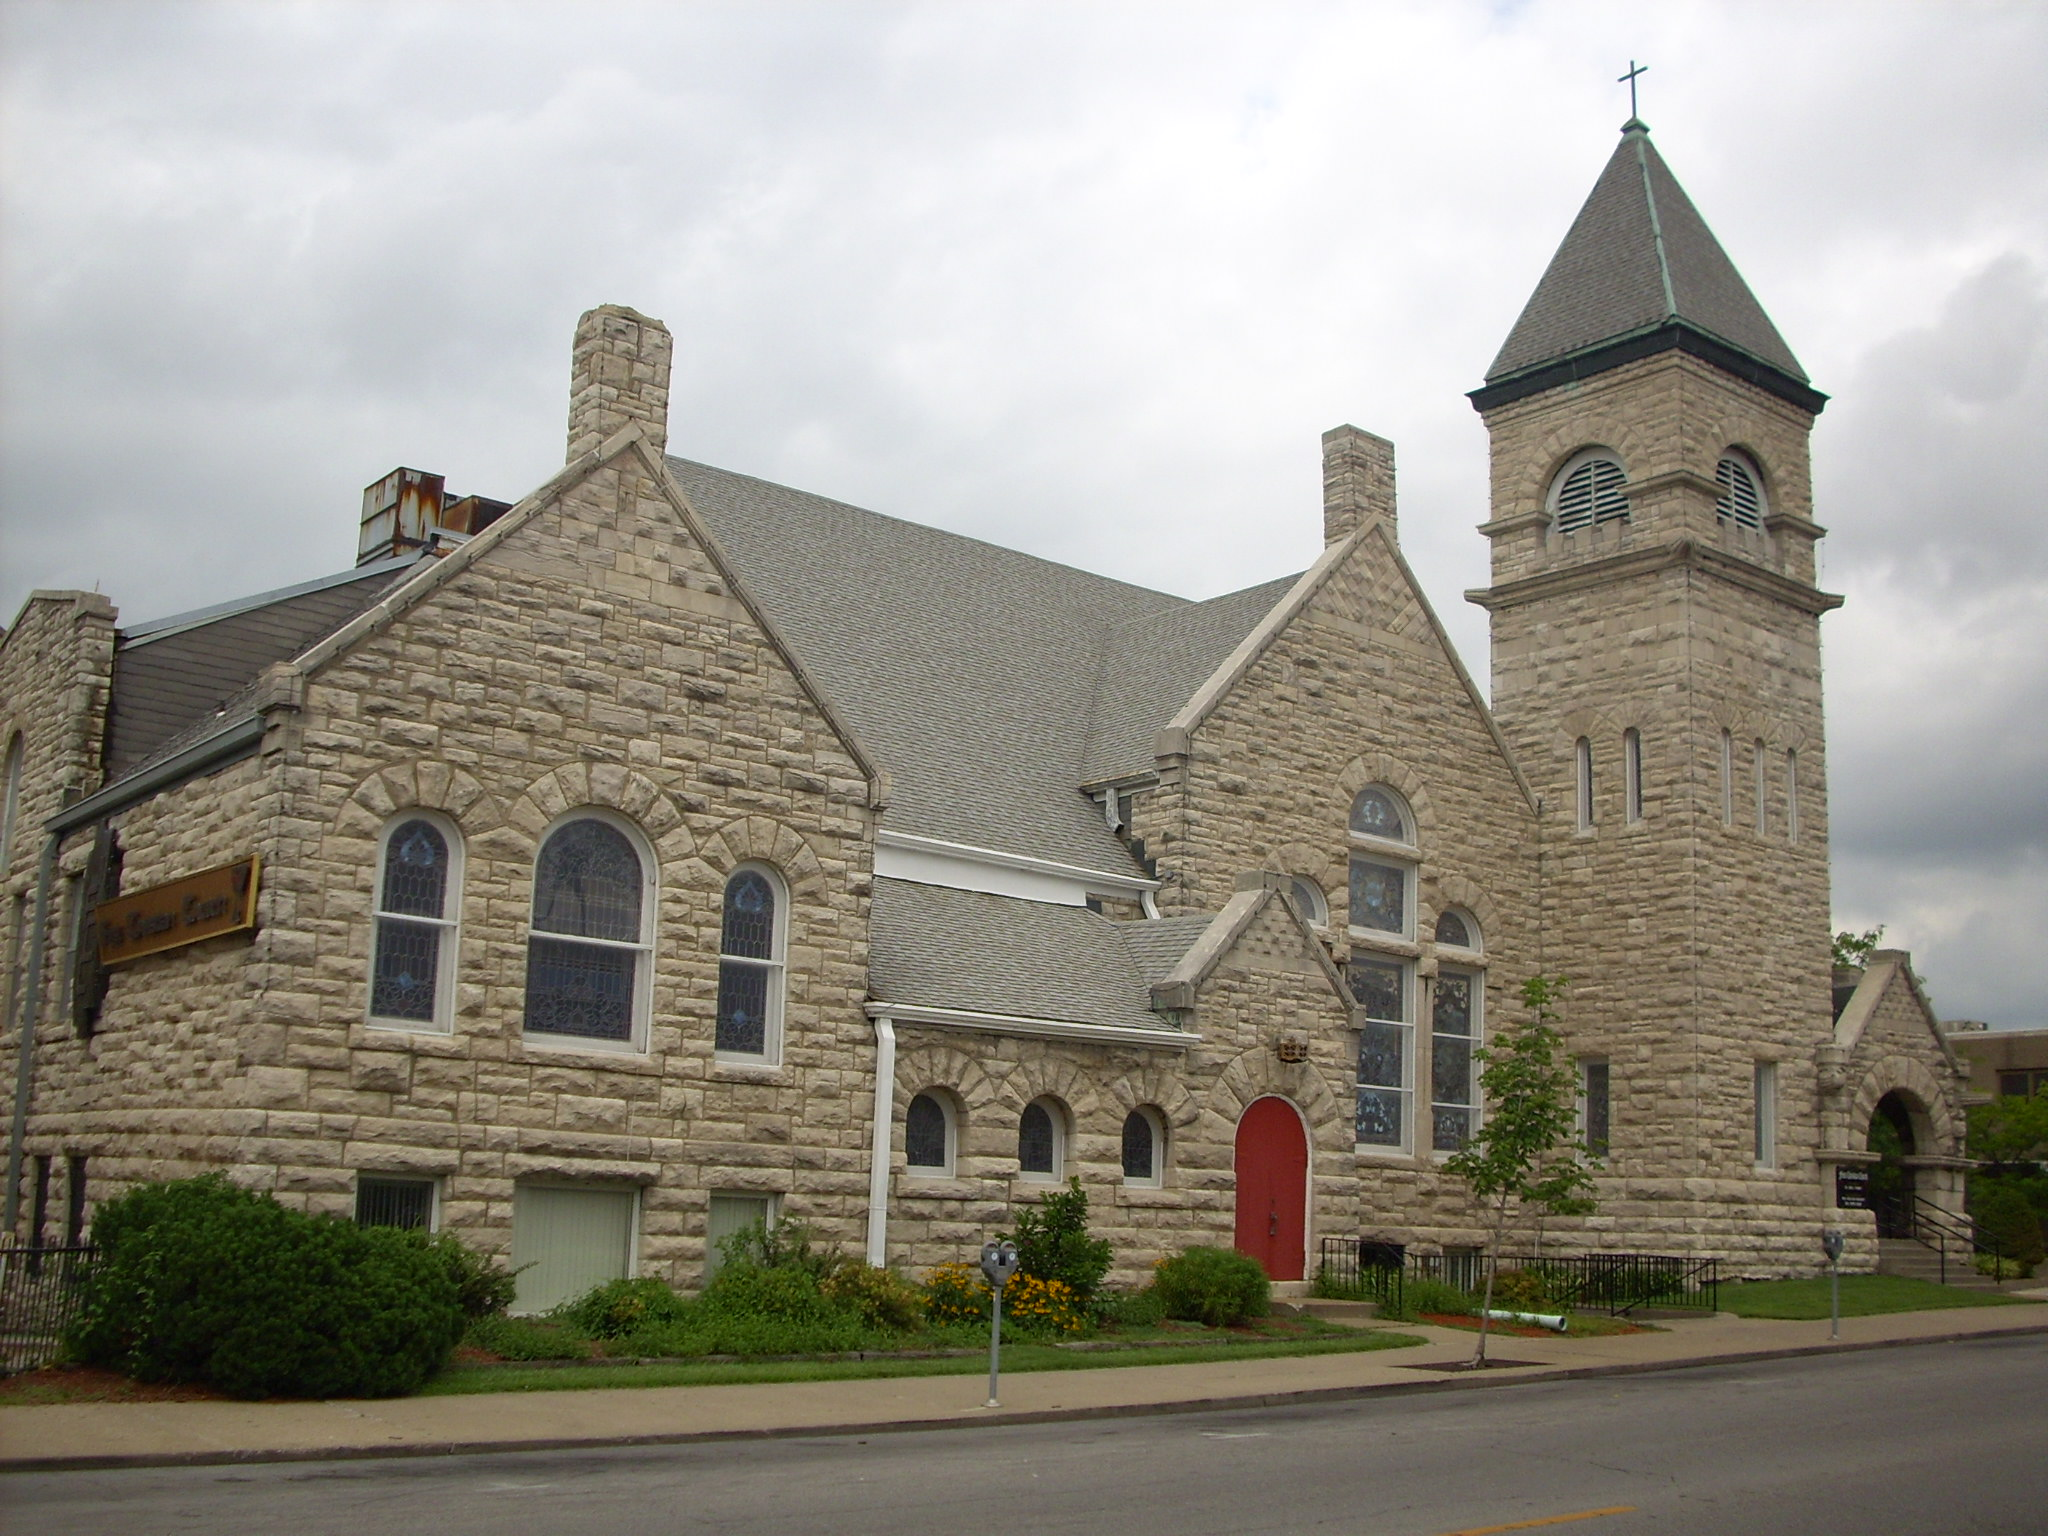 2009 photo of the First Christian Church of Columbia, Missouri.